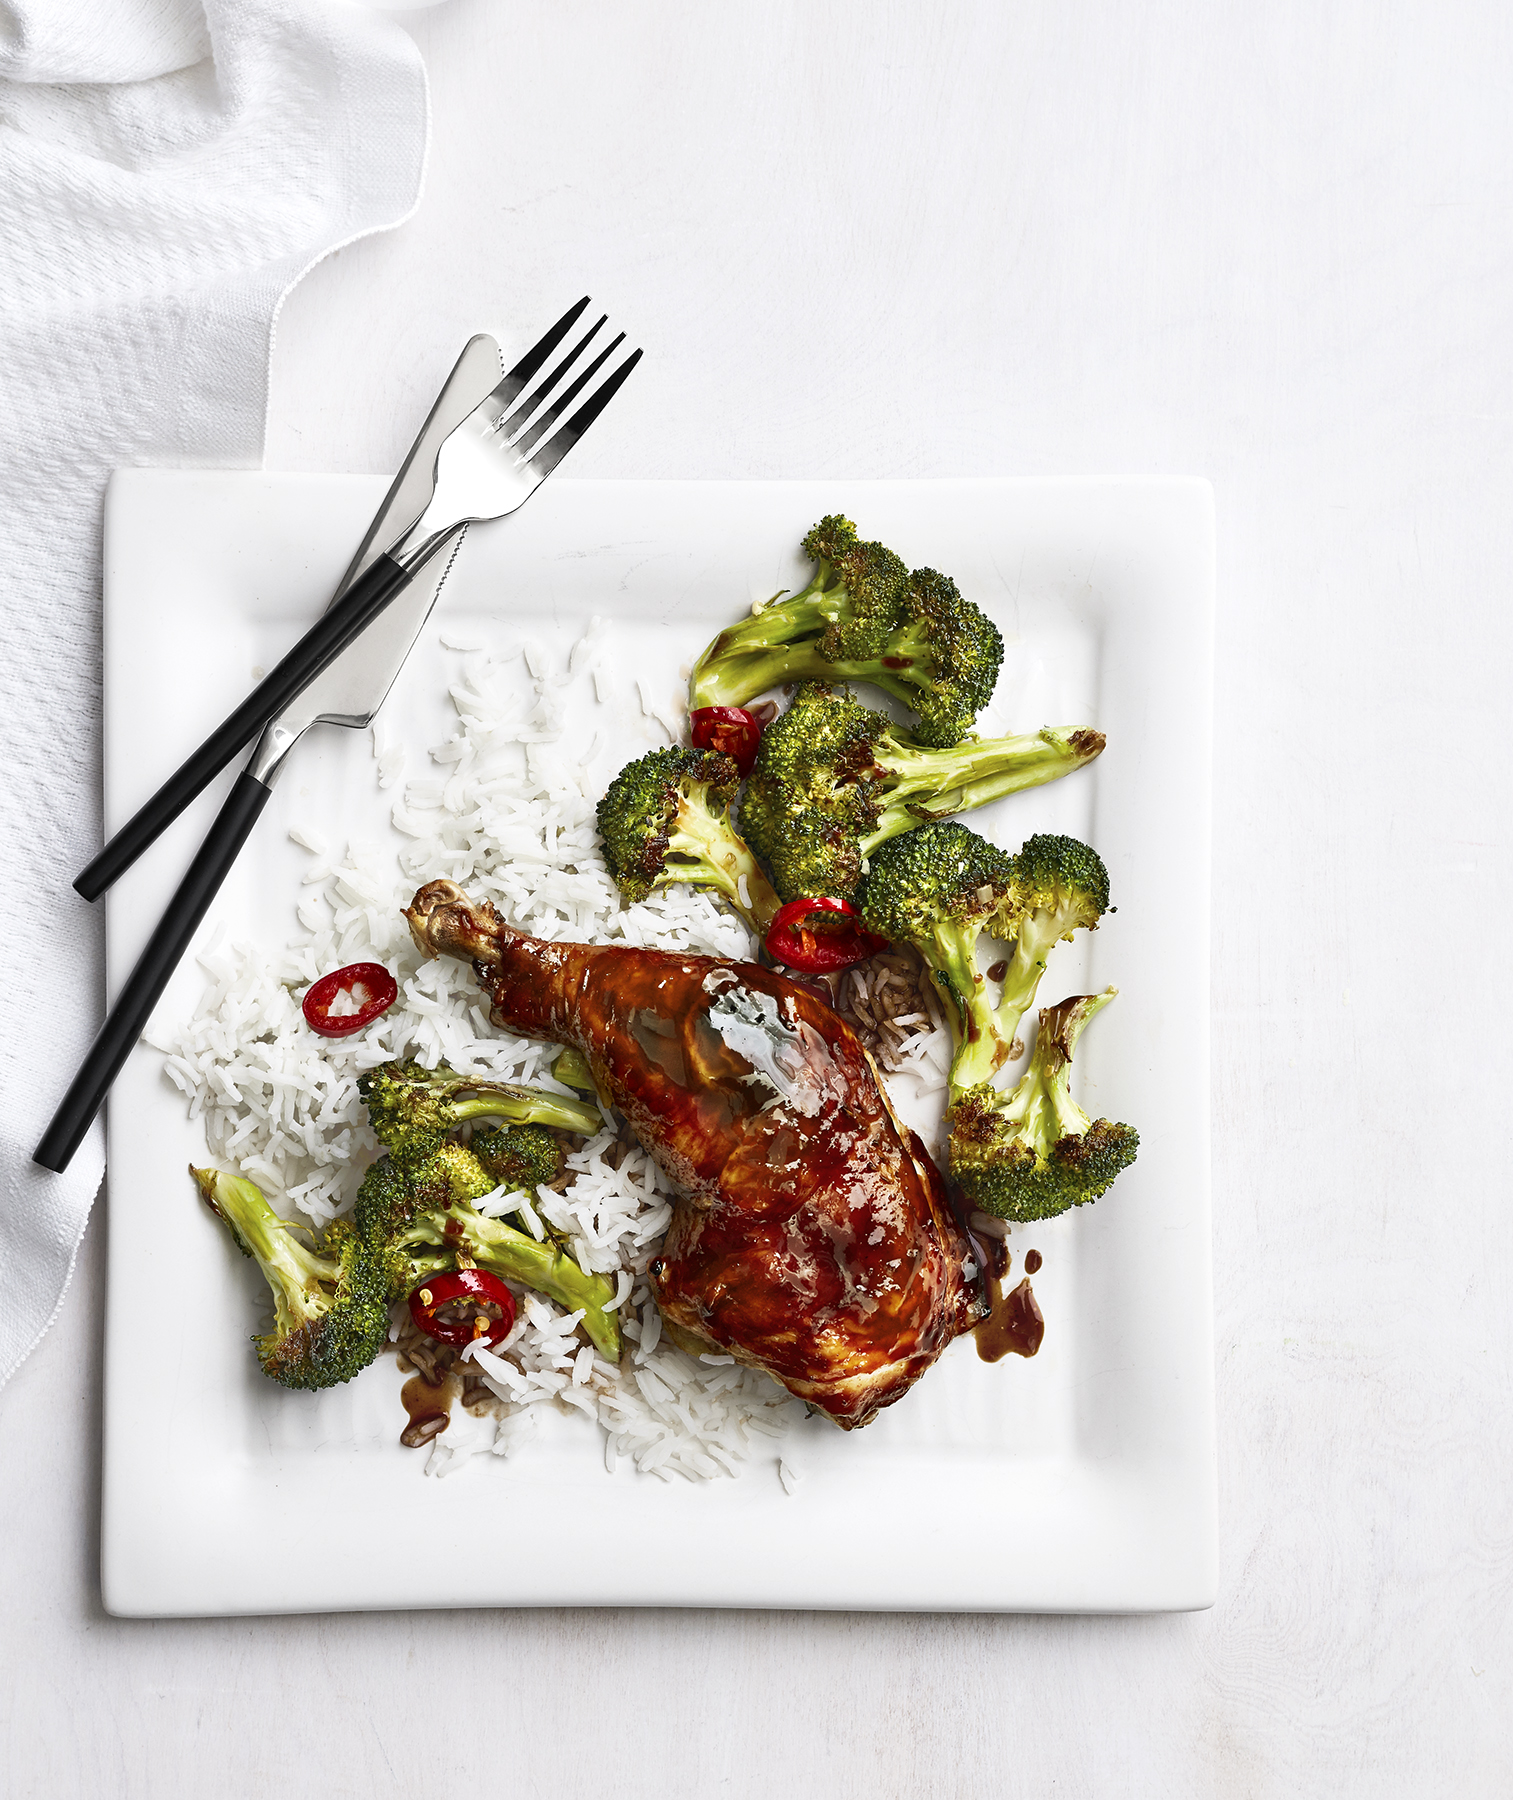 Hoisin Chicken With Broccoli